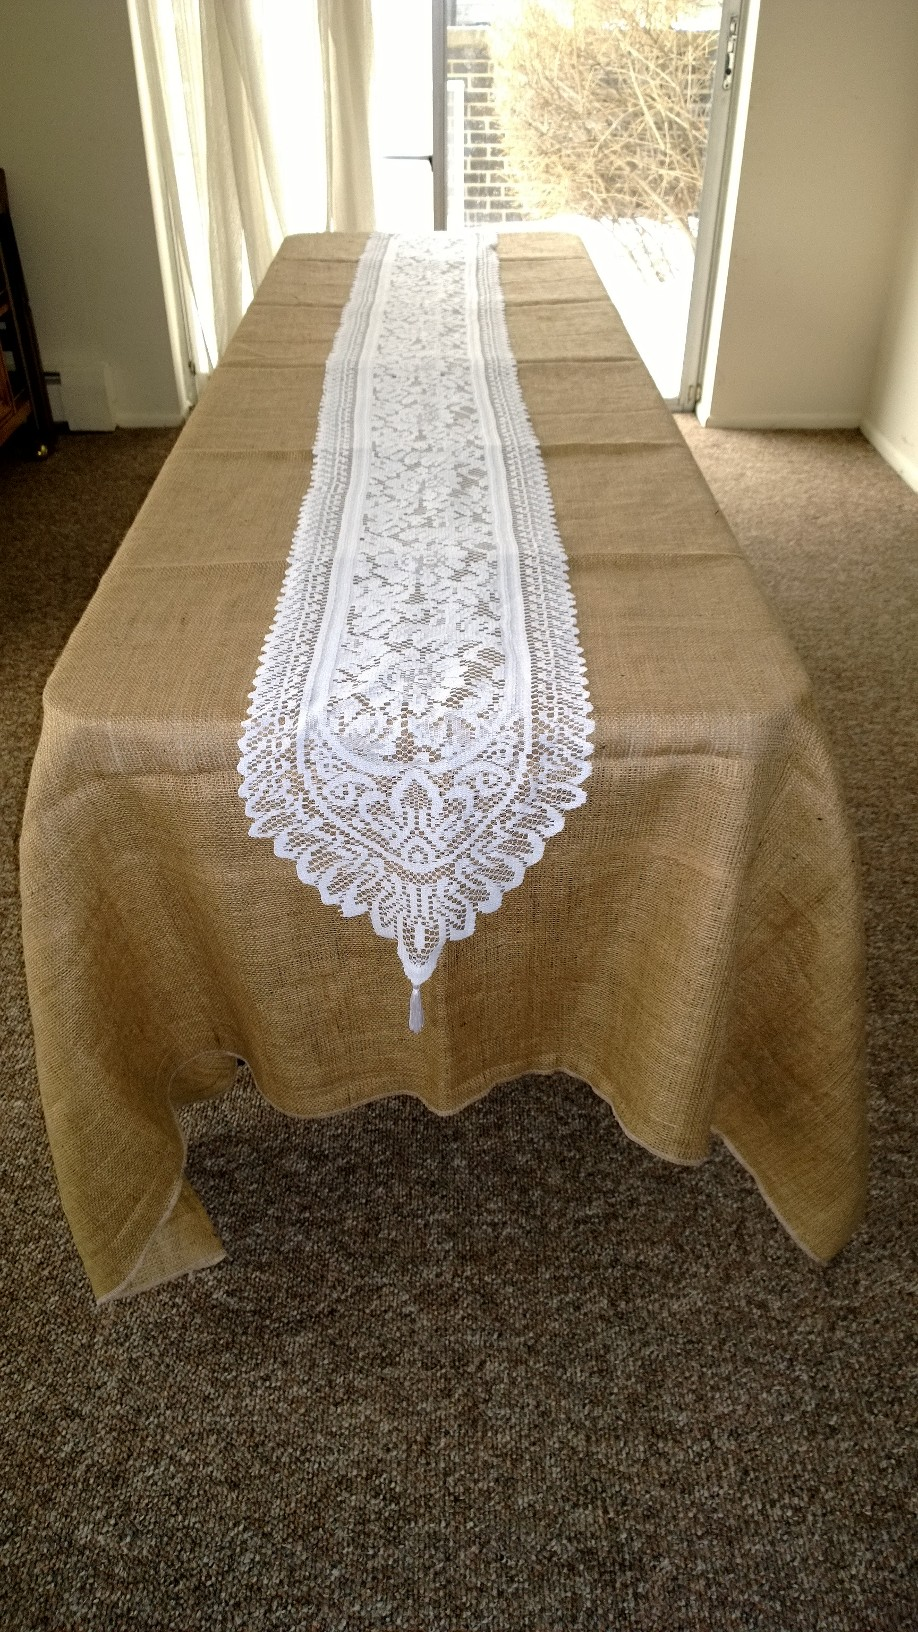 Lace Table Runners | Christmas Plaid Table Runner | Antique Lace Table Runners